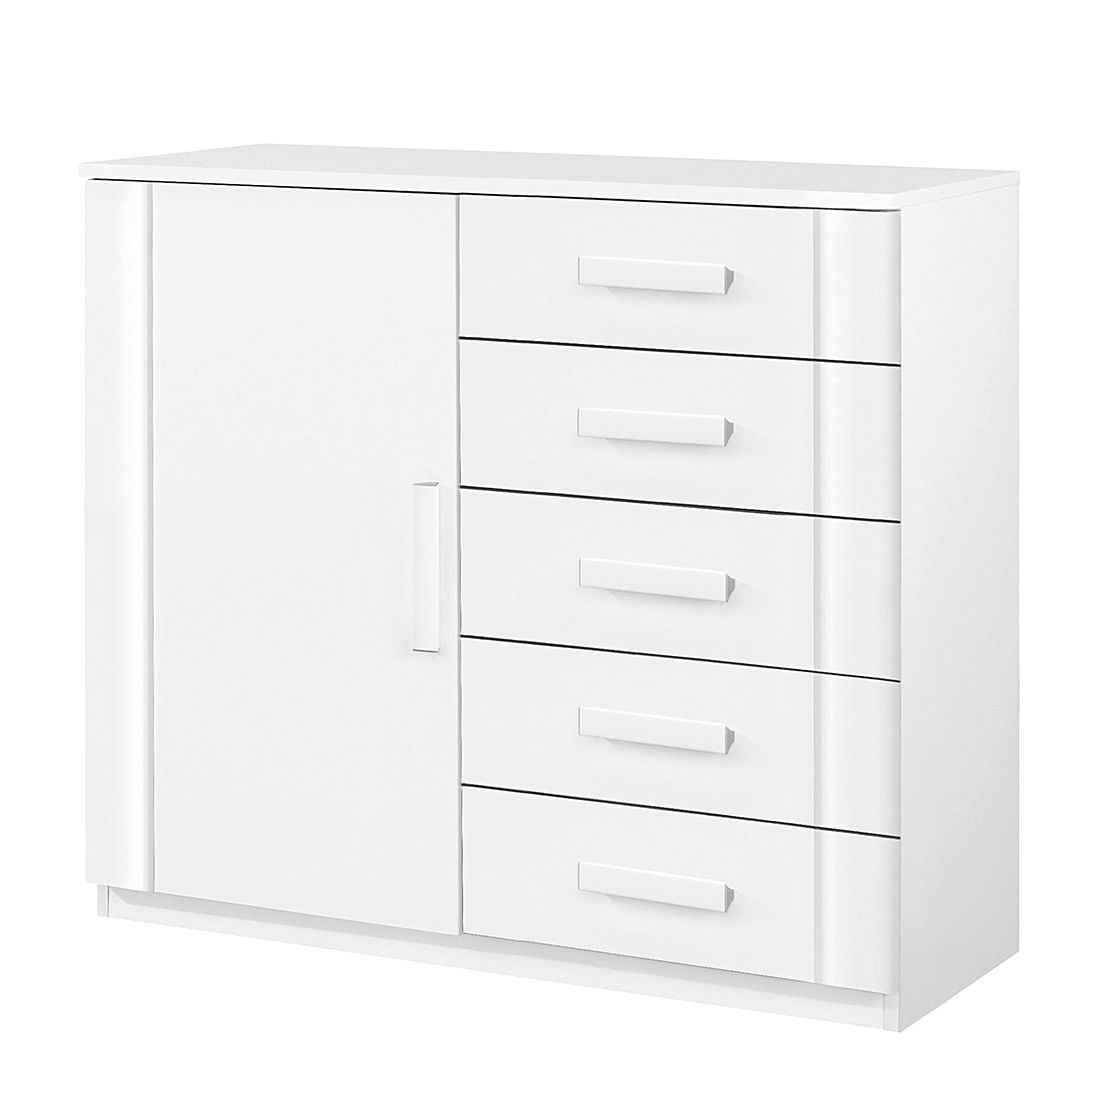 Commode Utrecht II - Blanc alpin, Rauch Packs